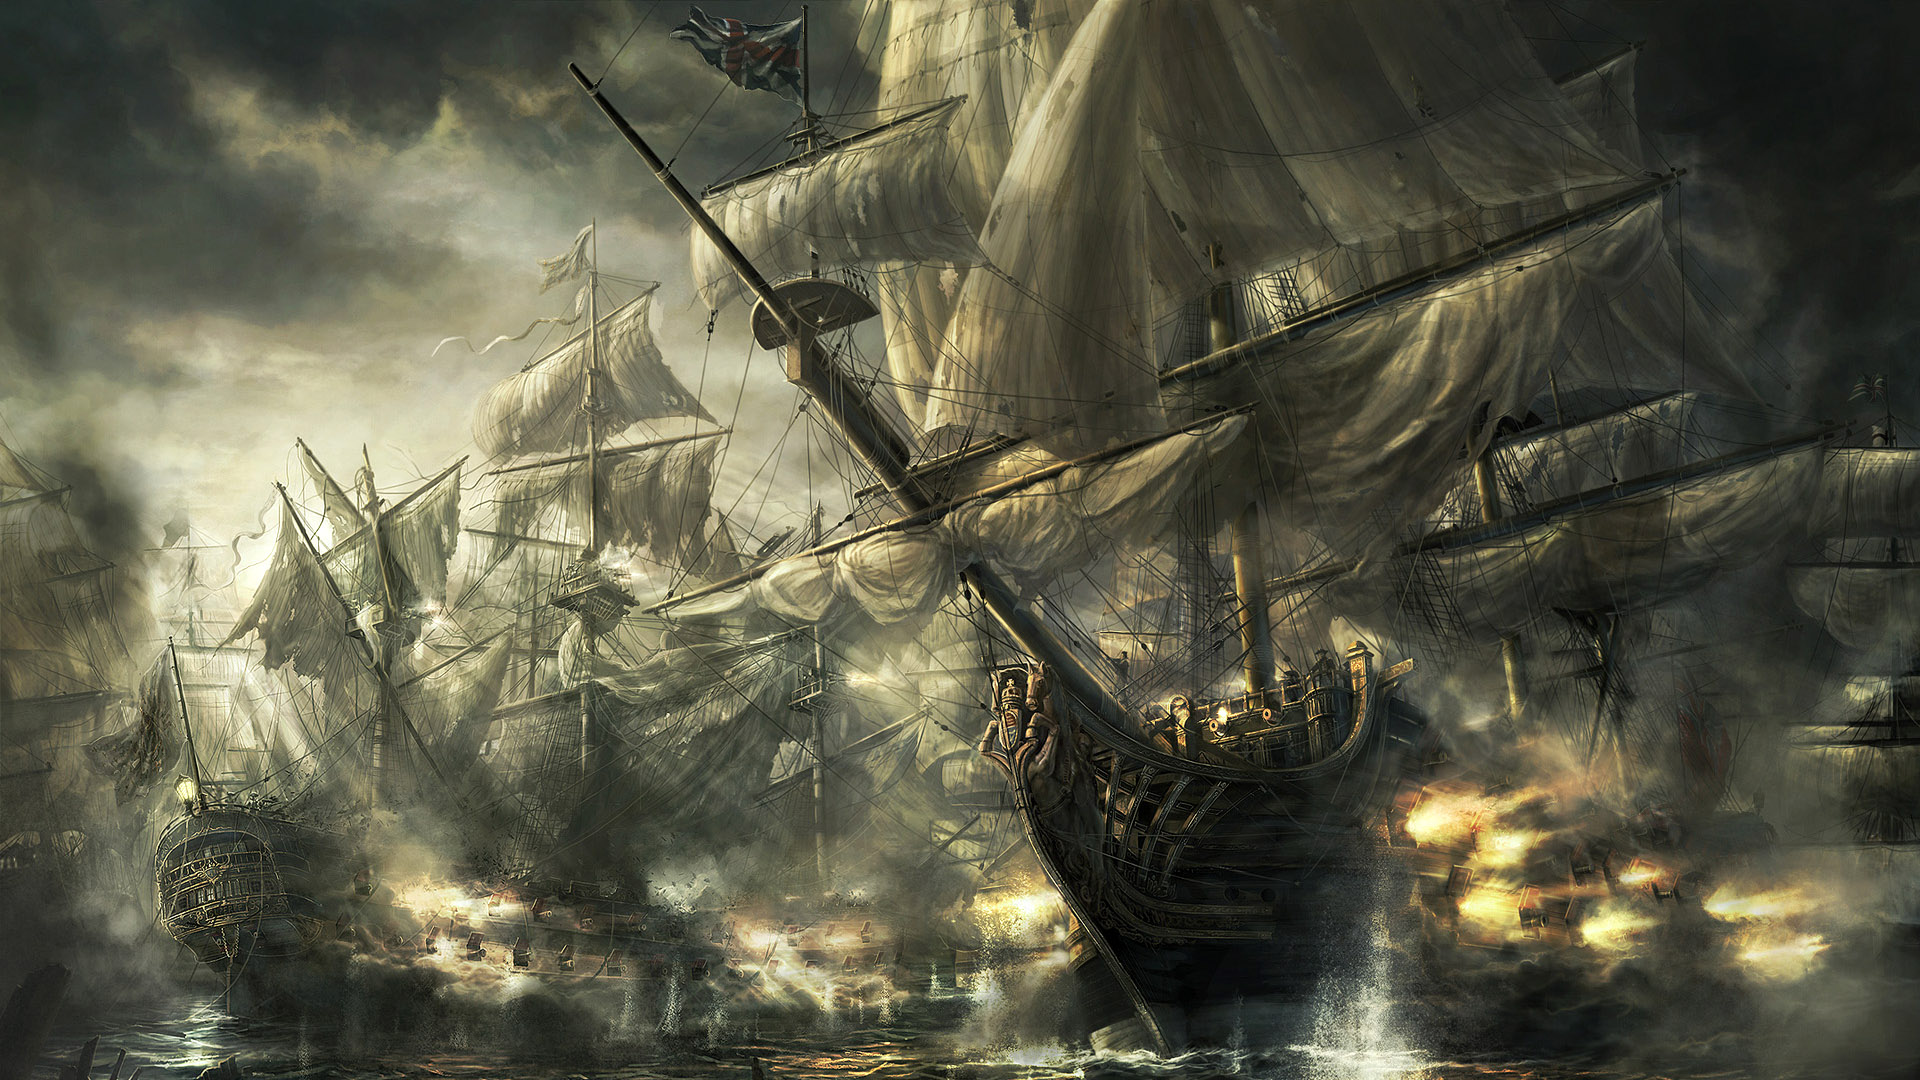 War Background Ship Ps3 Massive wallpapers HD   154285 1920x1080